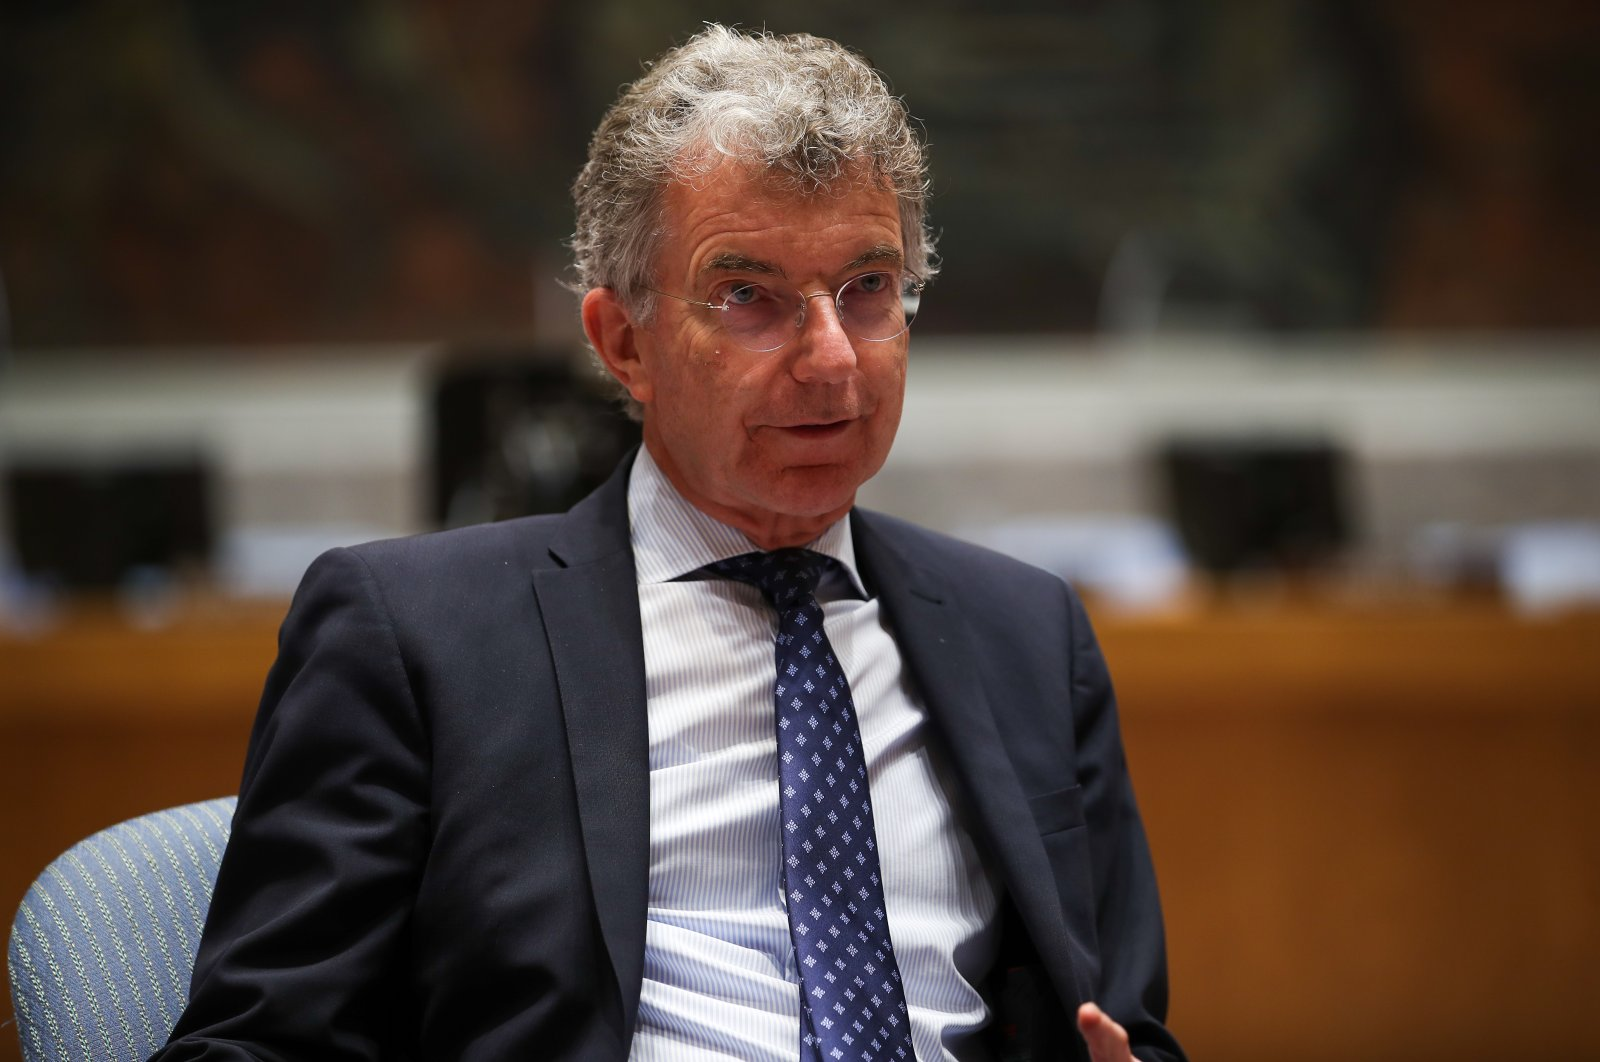 German U.N. envoy Christoph Heusgen speaks during an interview with Anadolu Agency (AA) at the Security Council, June 16, 2021. (AA Photo)